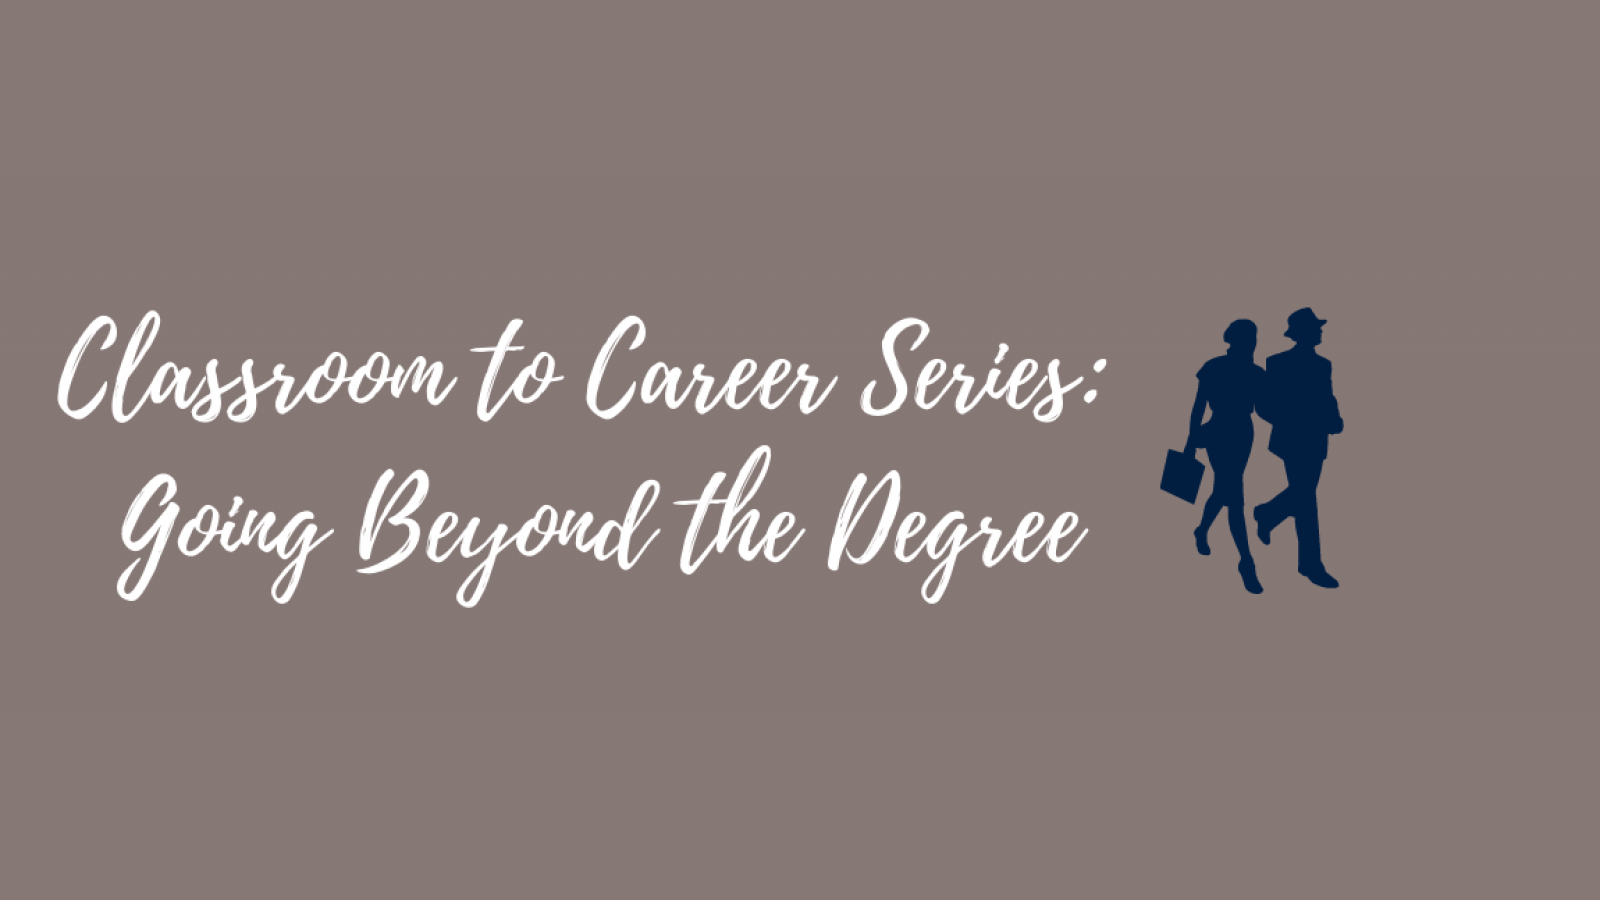 Grey background with blue text overlay reading—Classroom to Career Series: Going Beyond the Degree—with two silhouettes standing side-by-side carrying briefcases